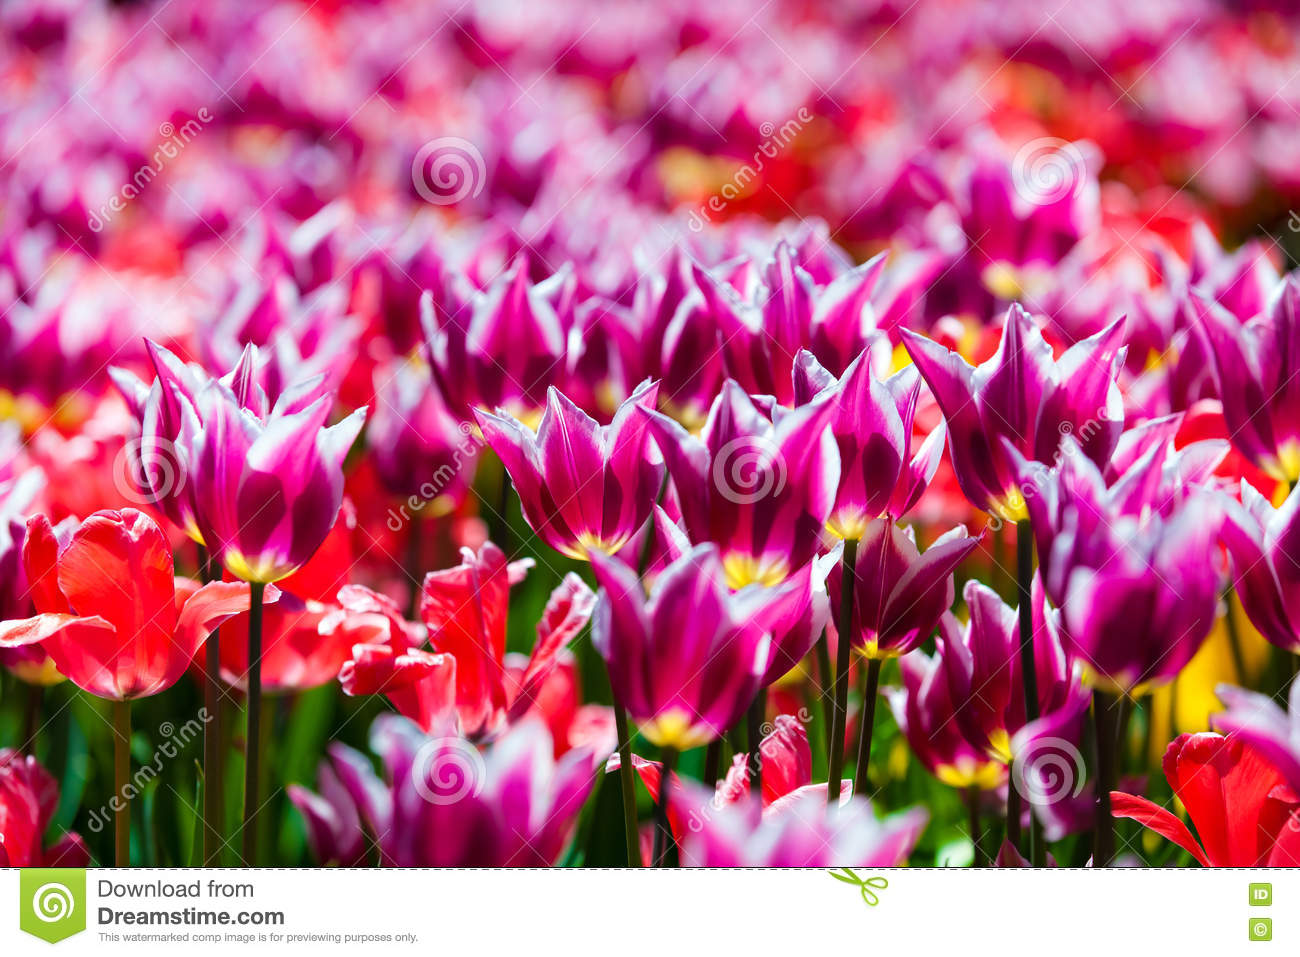 Champ des tulipes